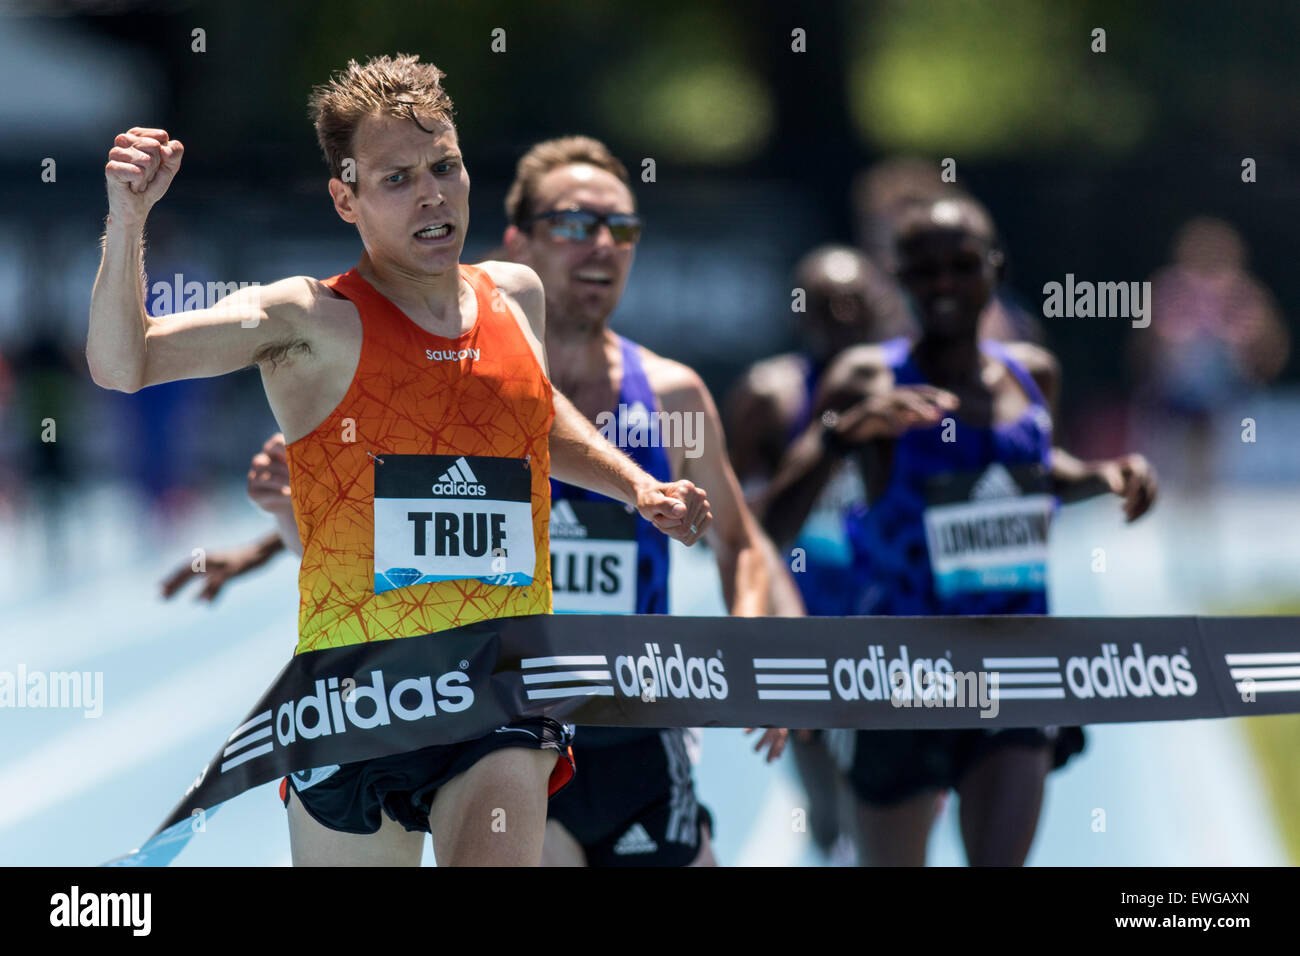 Ben vero (USA) sconfigge Nick Willis (NZL) negli uomini 5000m a 2015 Adidas NYC Diamond League Grand Prix Immagini Stock